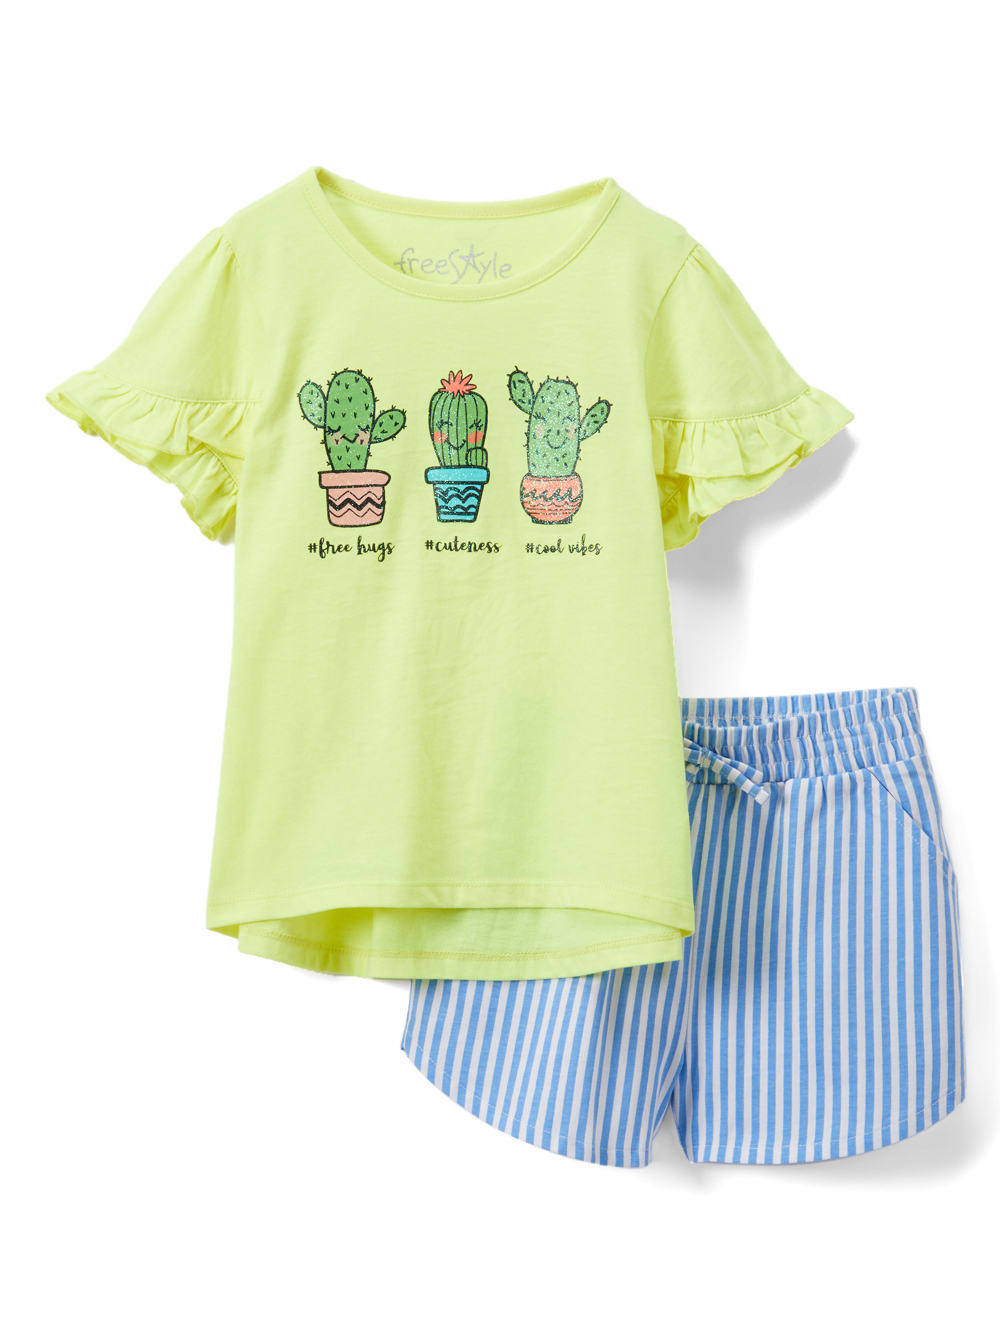 Ruffle T-shirt and Striped Shorts, 2pc Outfit Set (Toddler Girls)